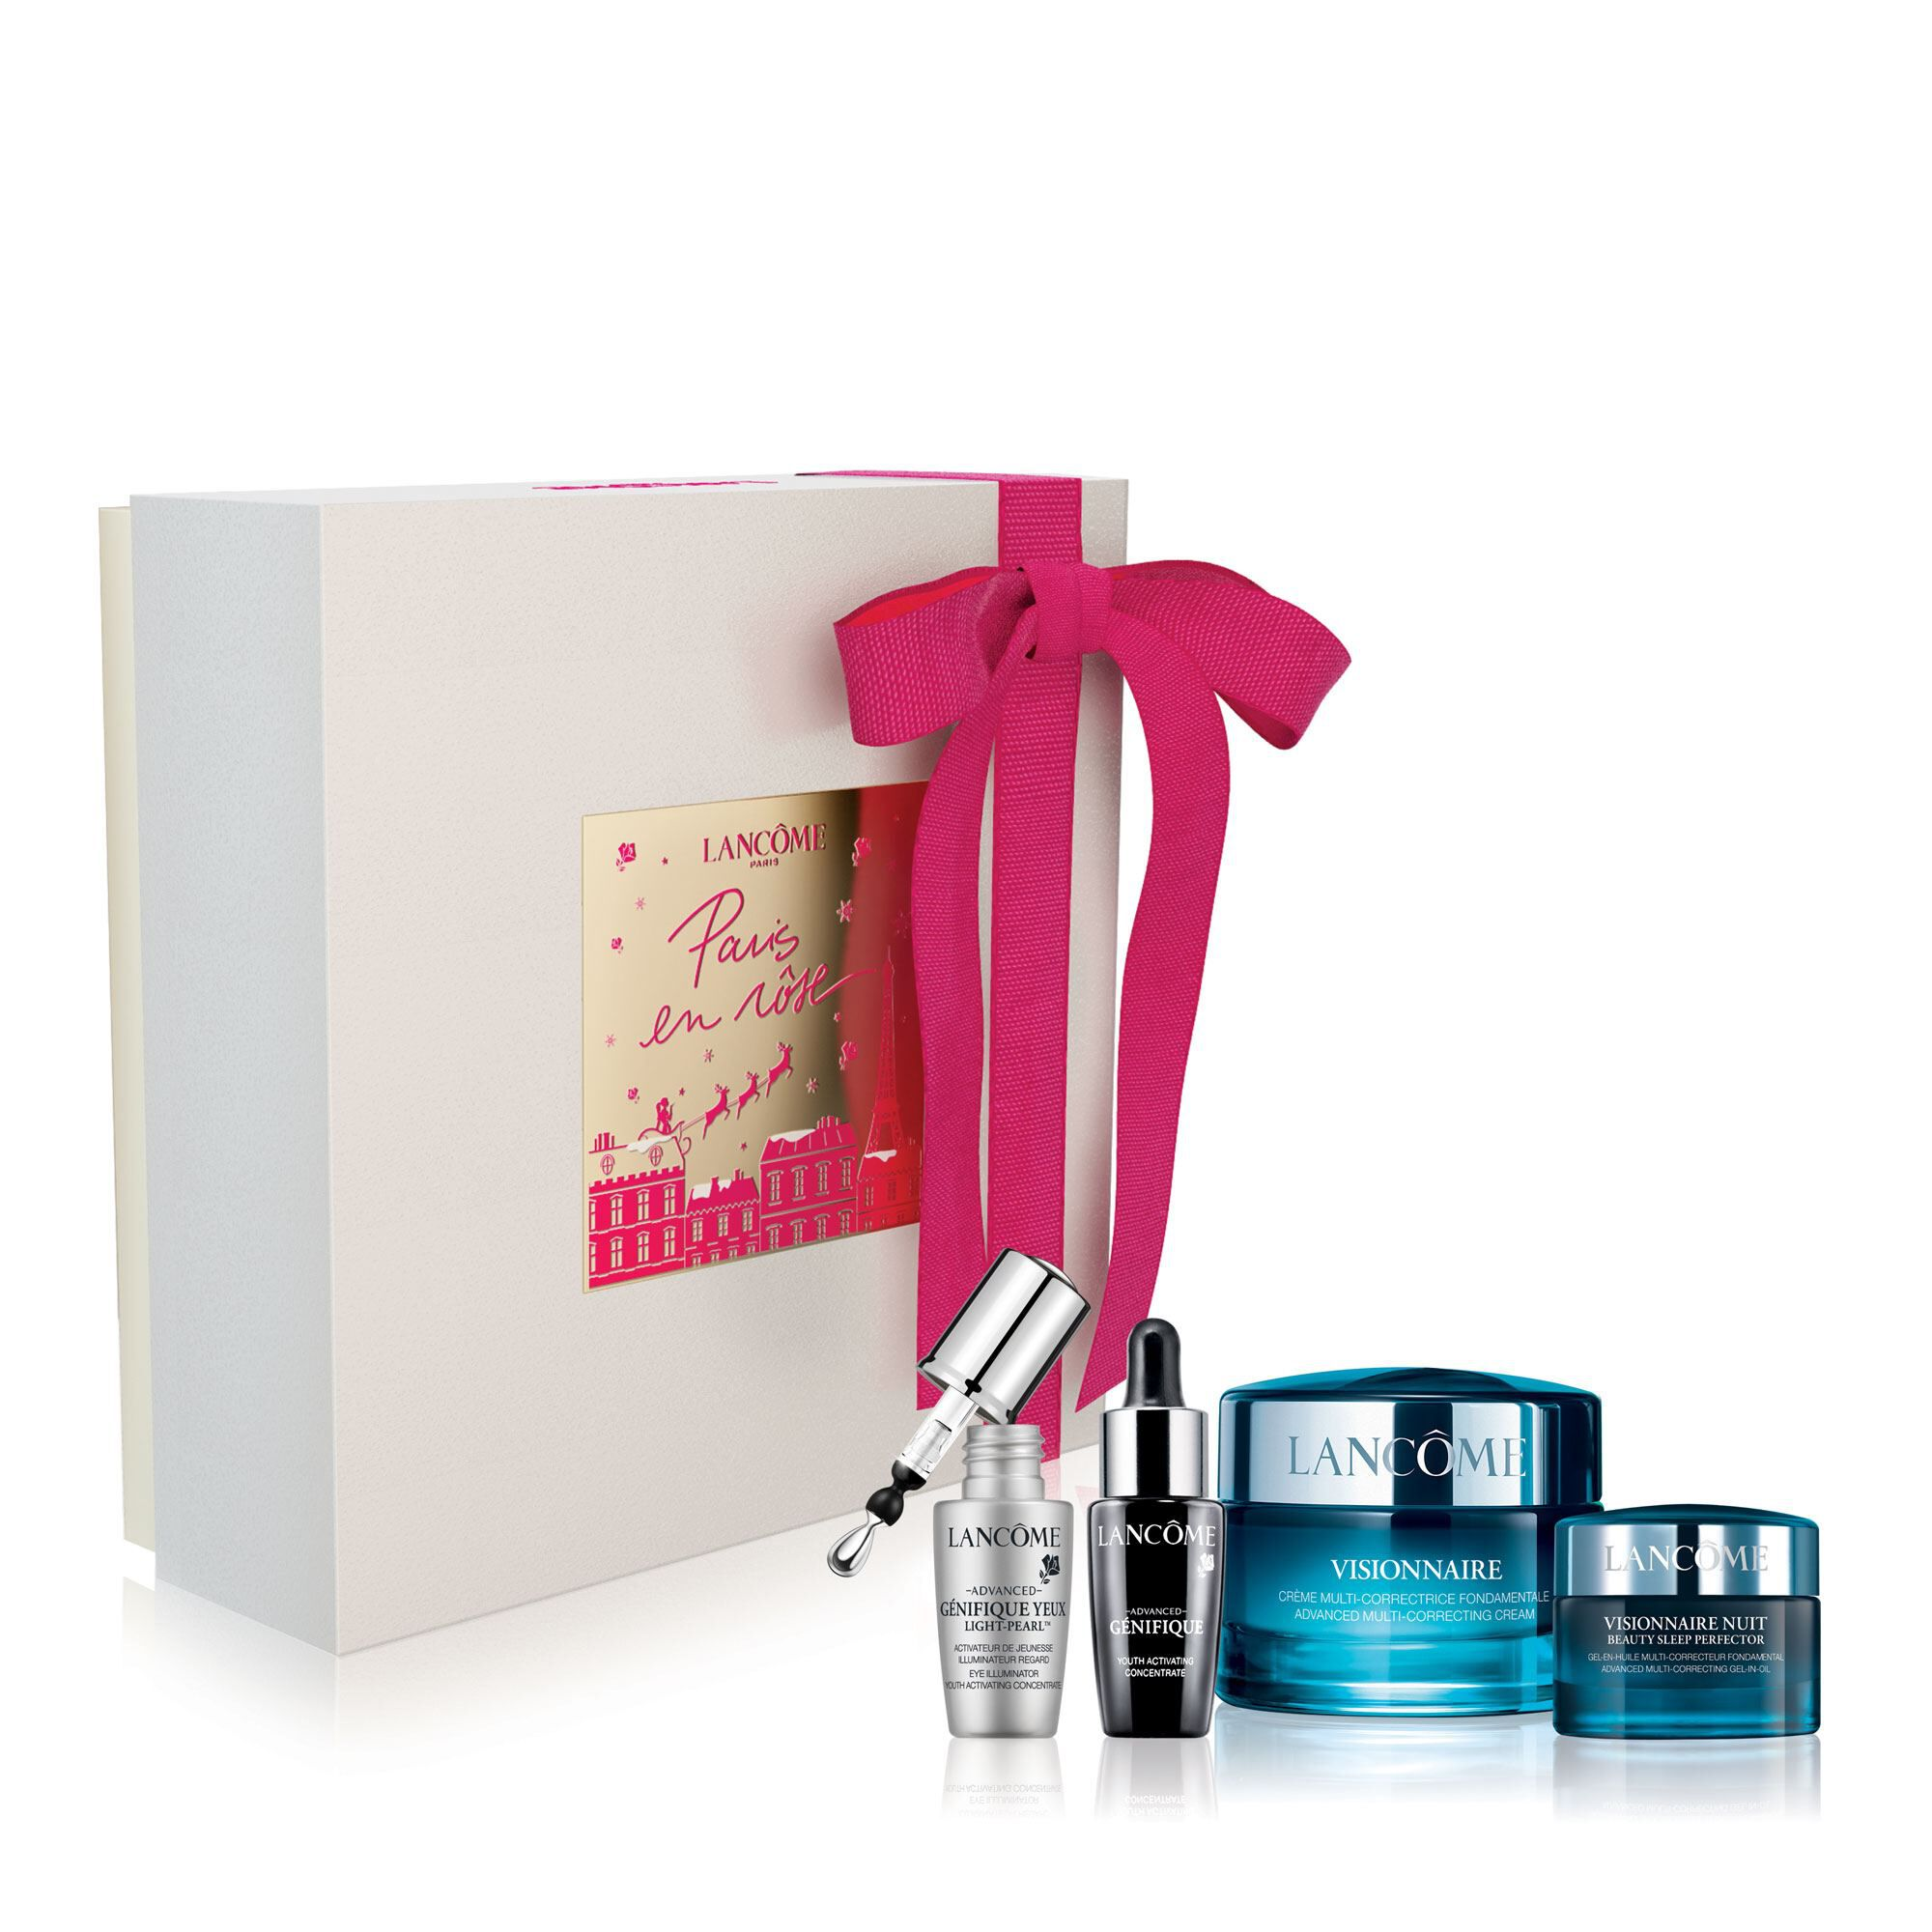 Visionnaire Skincare Gift Set - younger-looking and radiant skin ...